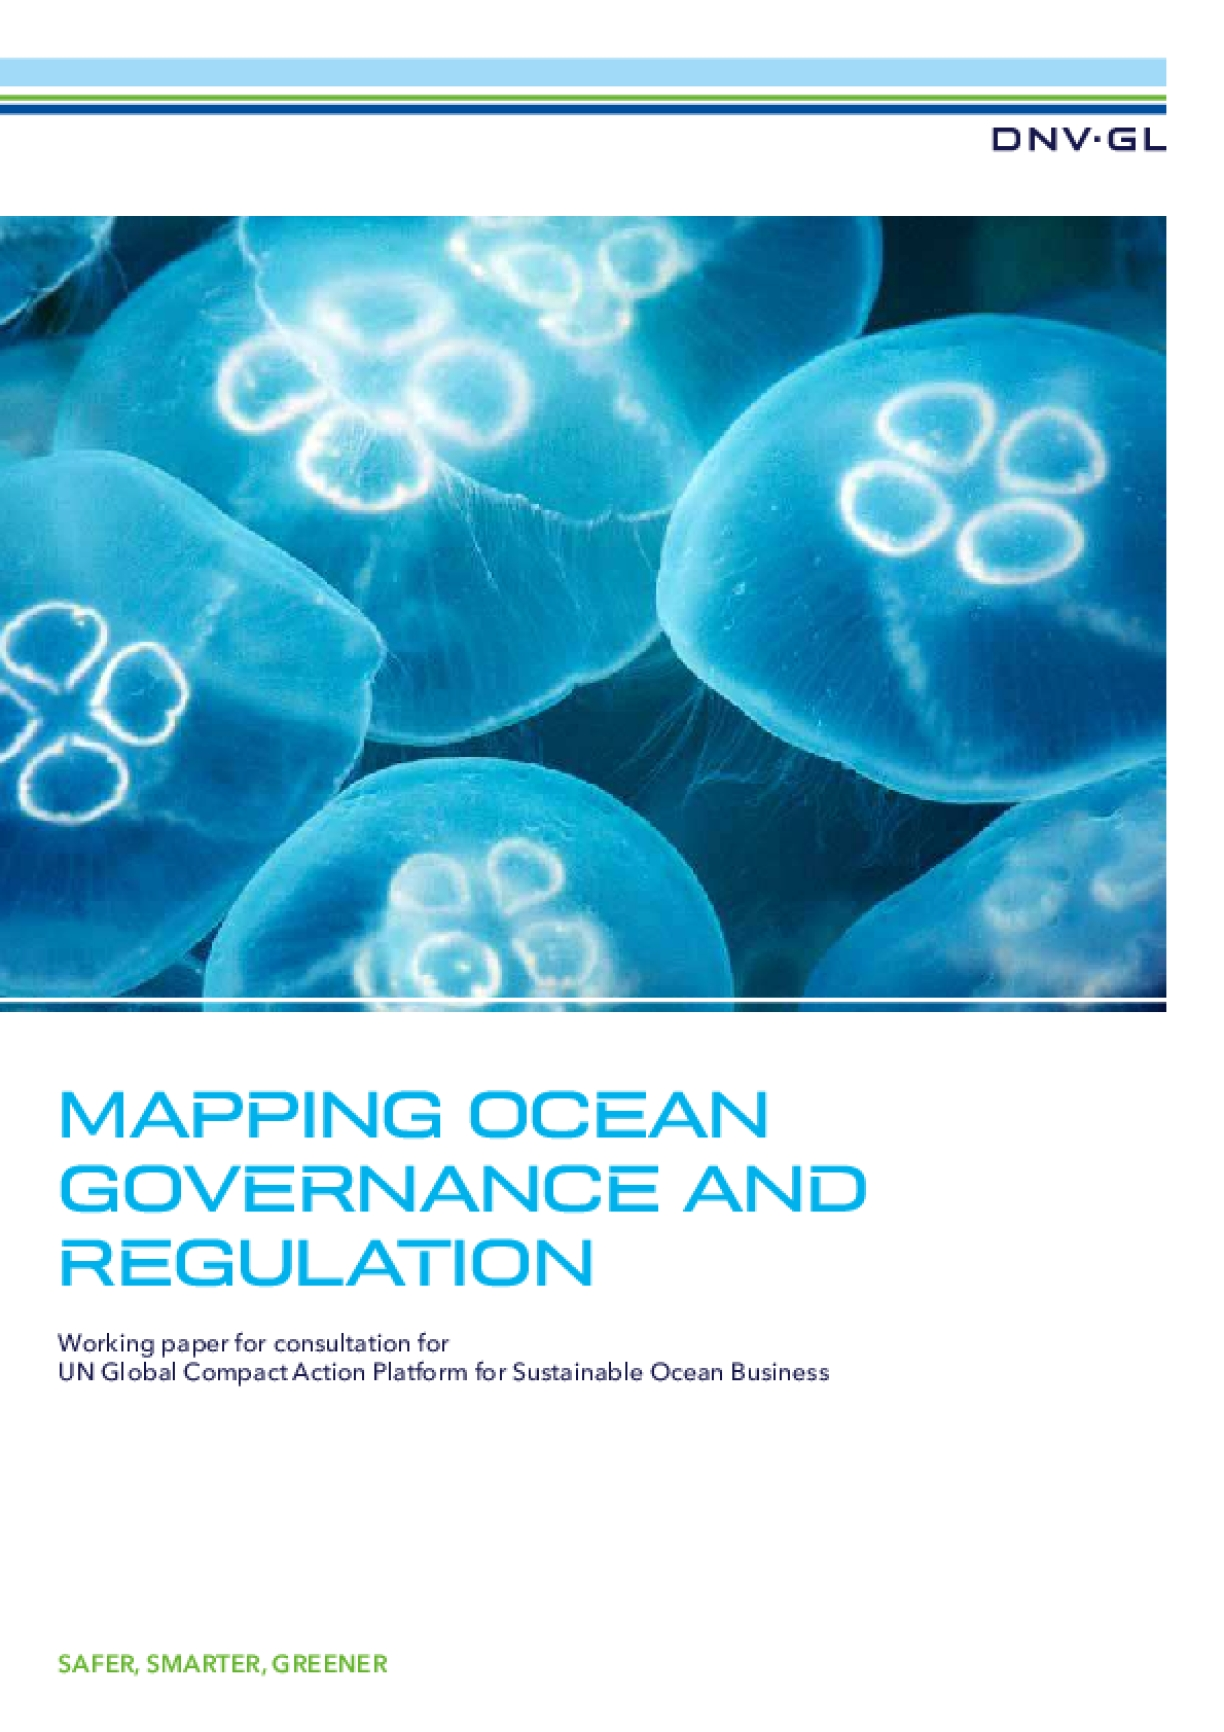 Mapping Ocean Governance and Regulation